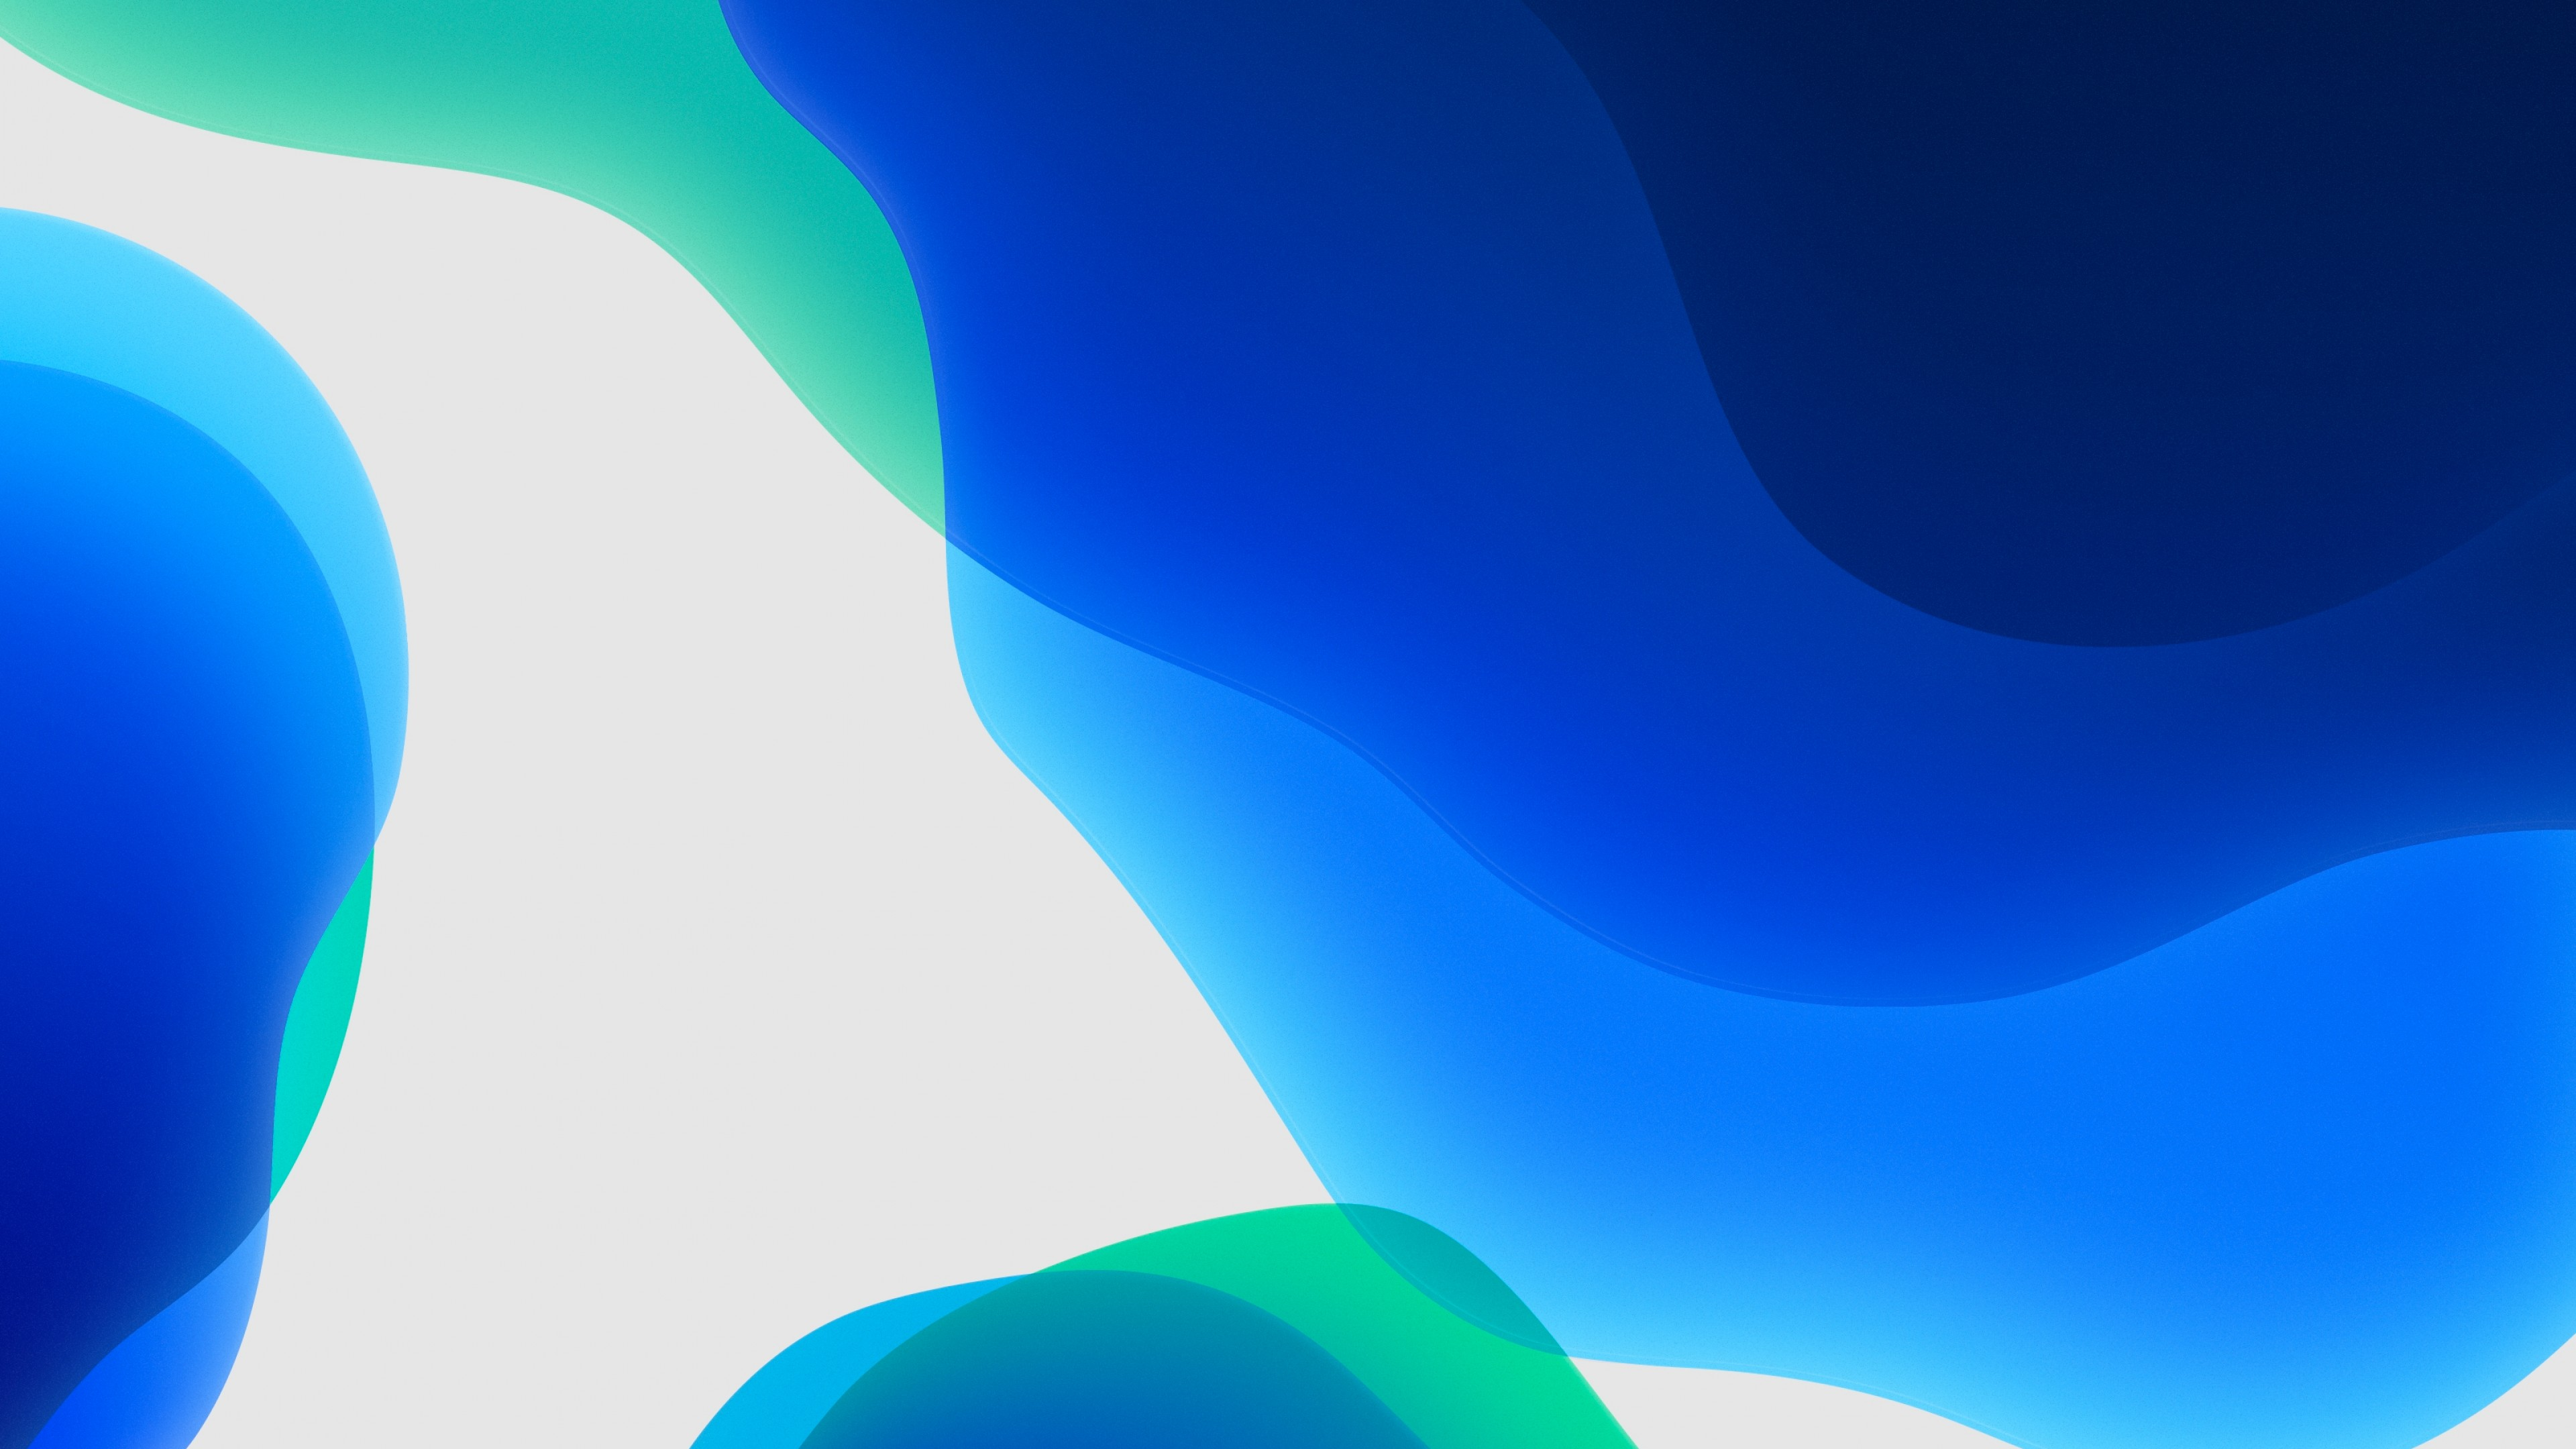 Macbook Wallpaper Quotes Wallpaper Ios 13 Ipados Abstract Colorful Wwdc 2019